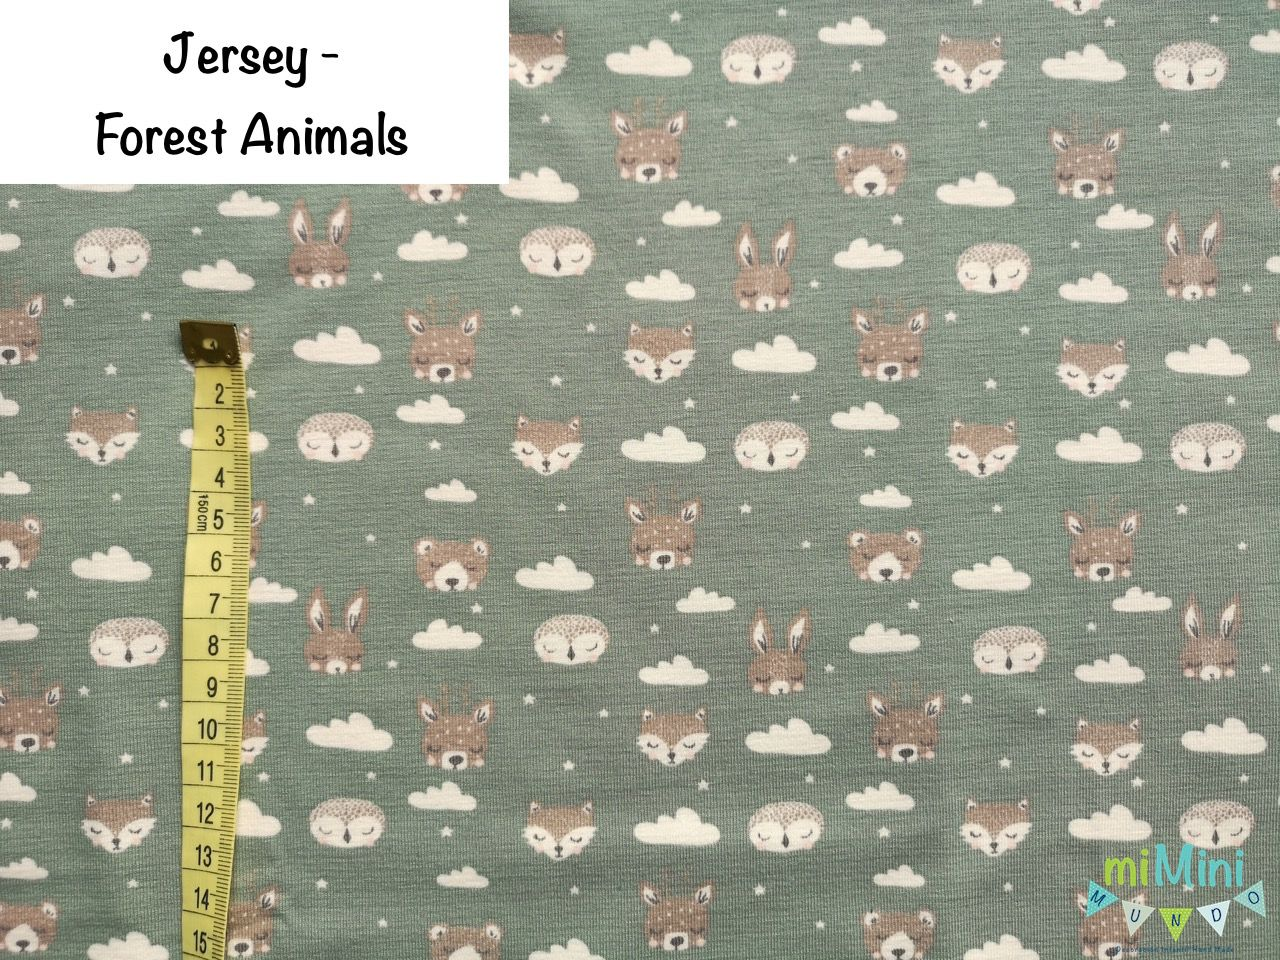 Jersey - Forest Animals